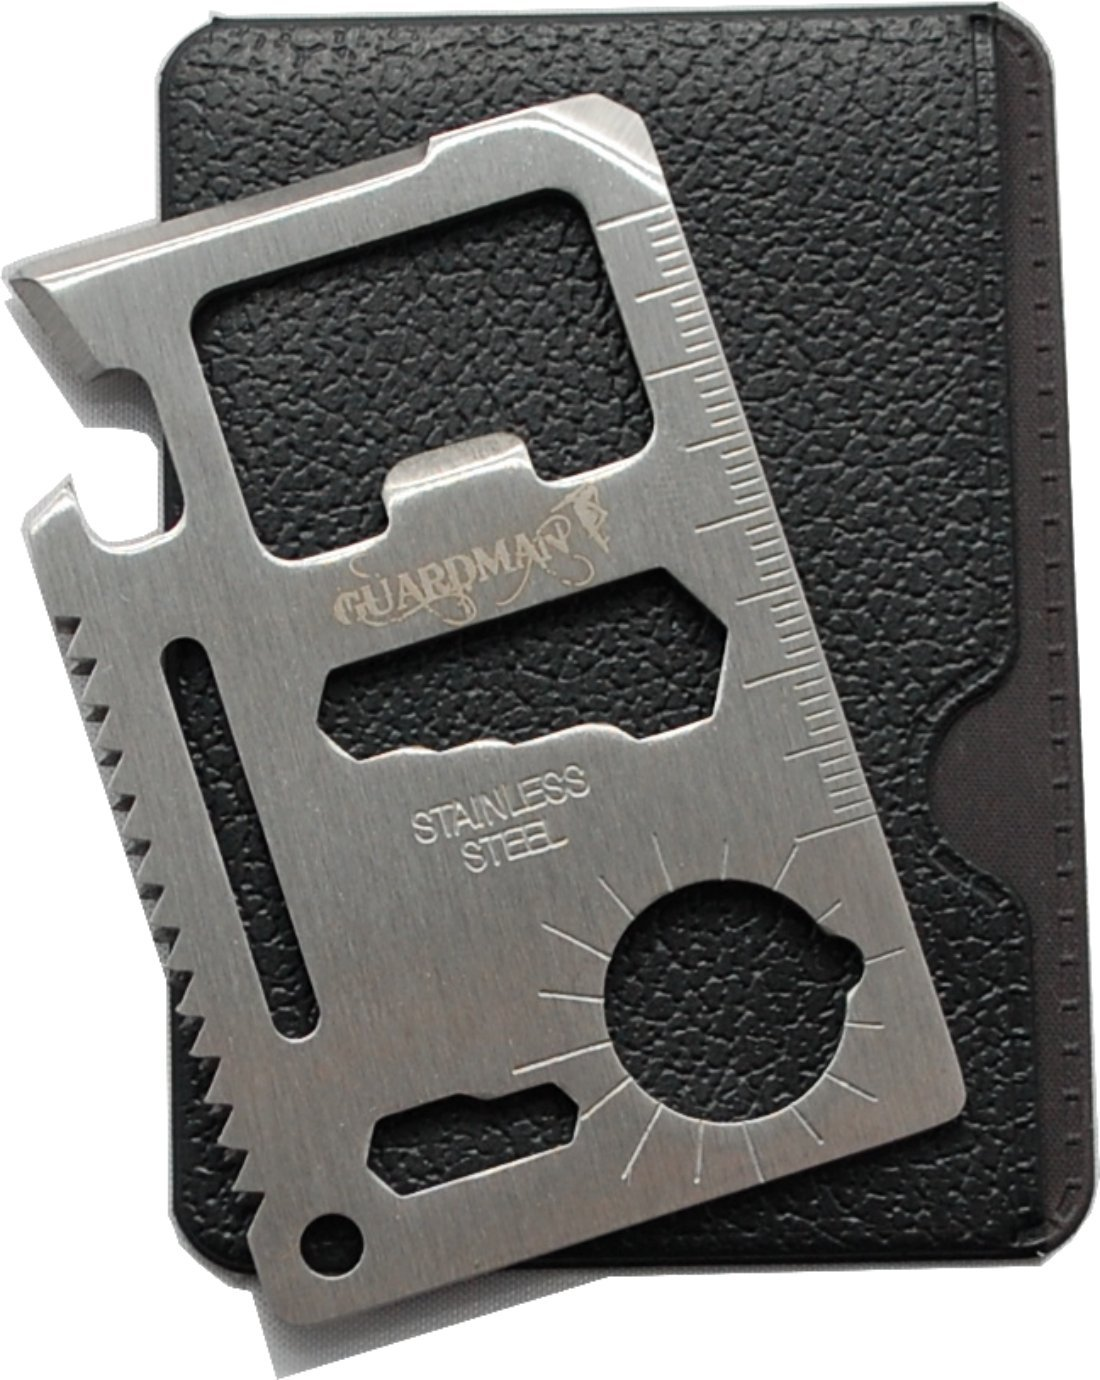 Guardman 11 in 1 Beer Opener Survival Credit Card Tool Fits Perfect in Your Wallet (1) Stocking Stuffers for Him Christmas Gifts for Him